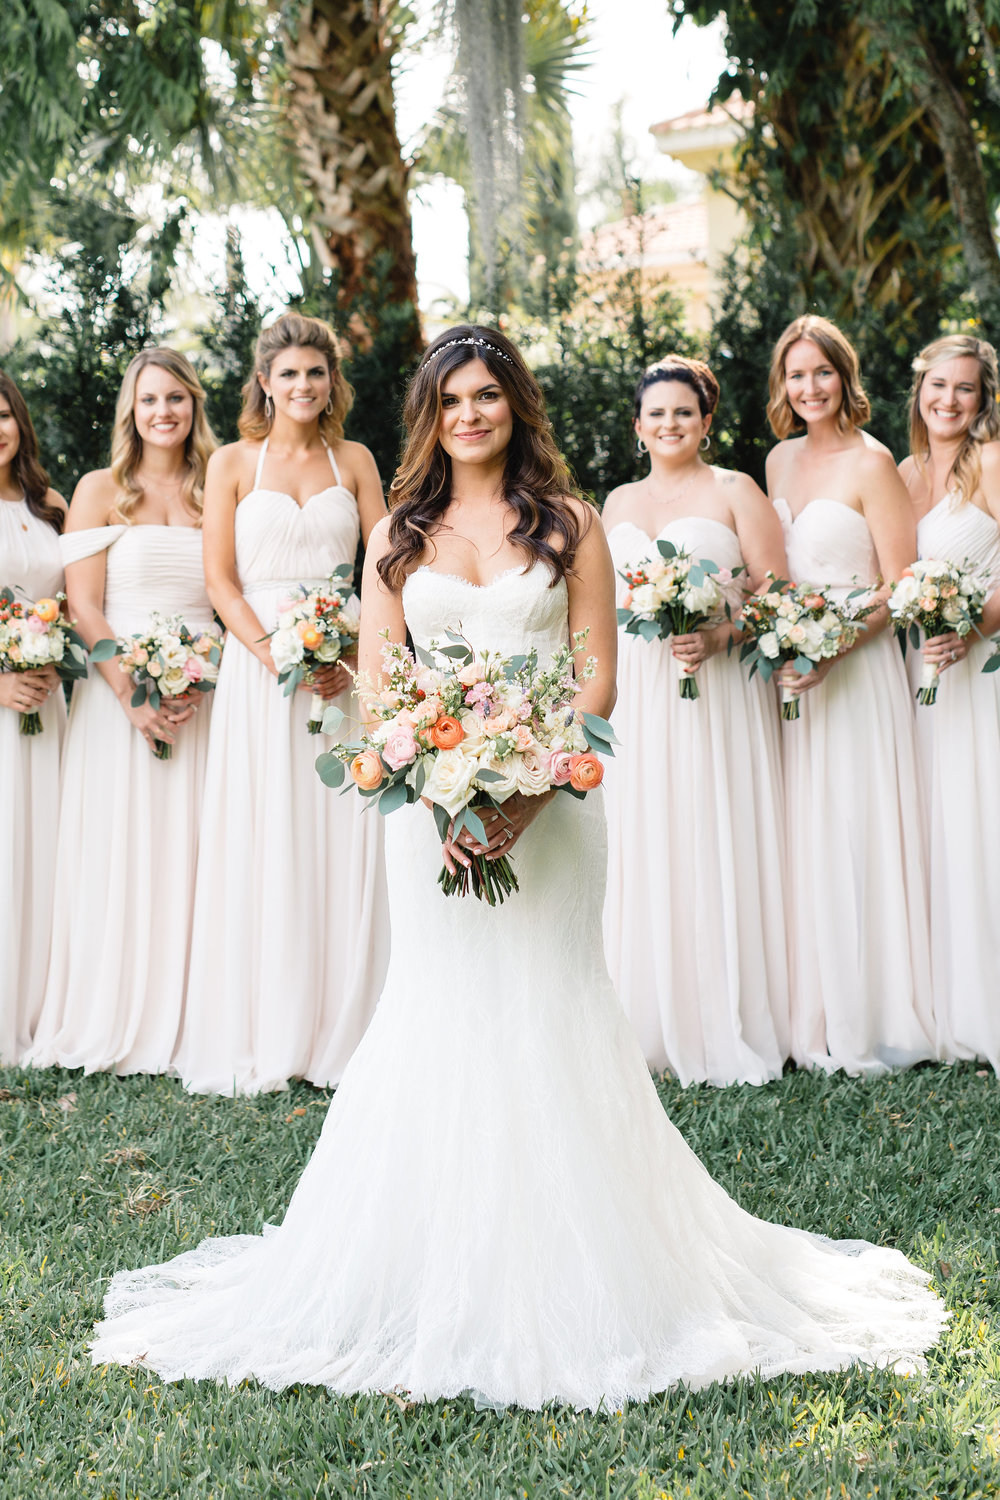 The bride + her bridesmaids